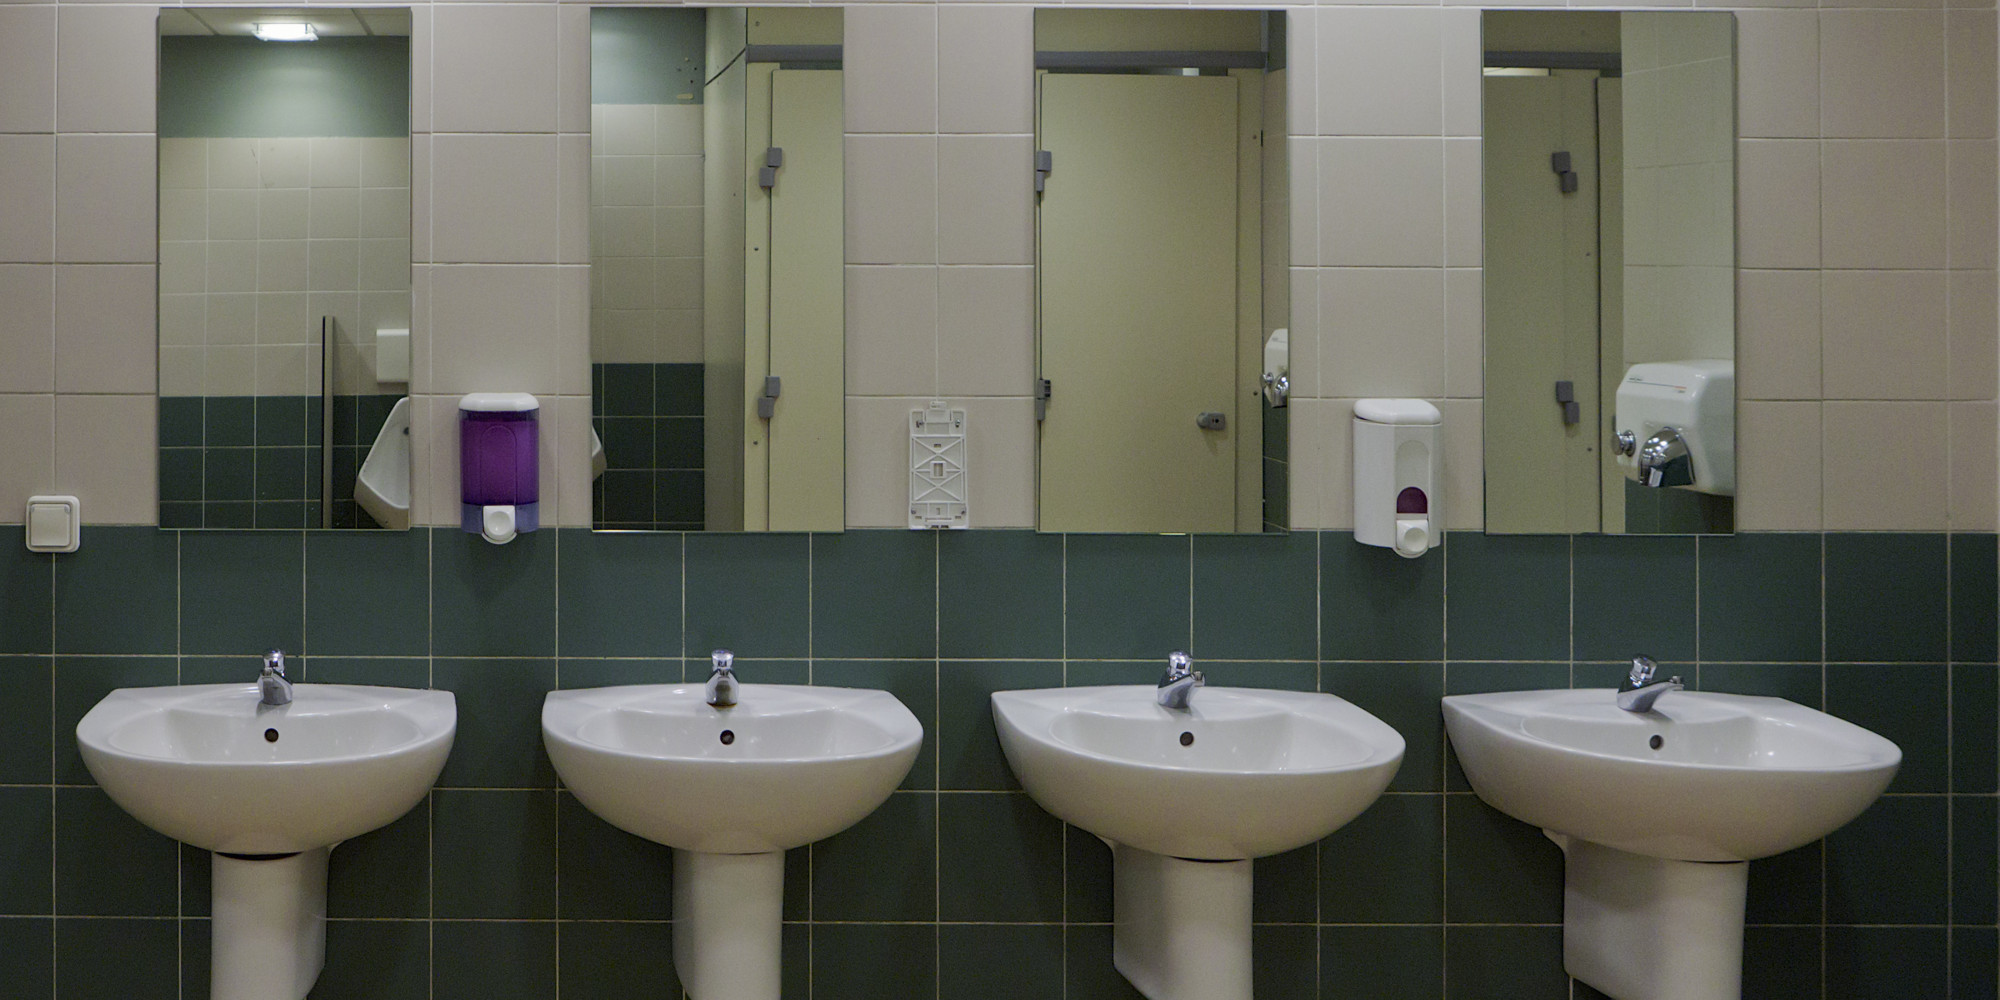 The unlikely place i found body acceptance huffpost for Public bathroom sink